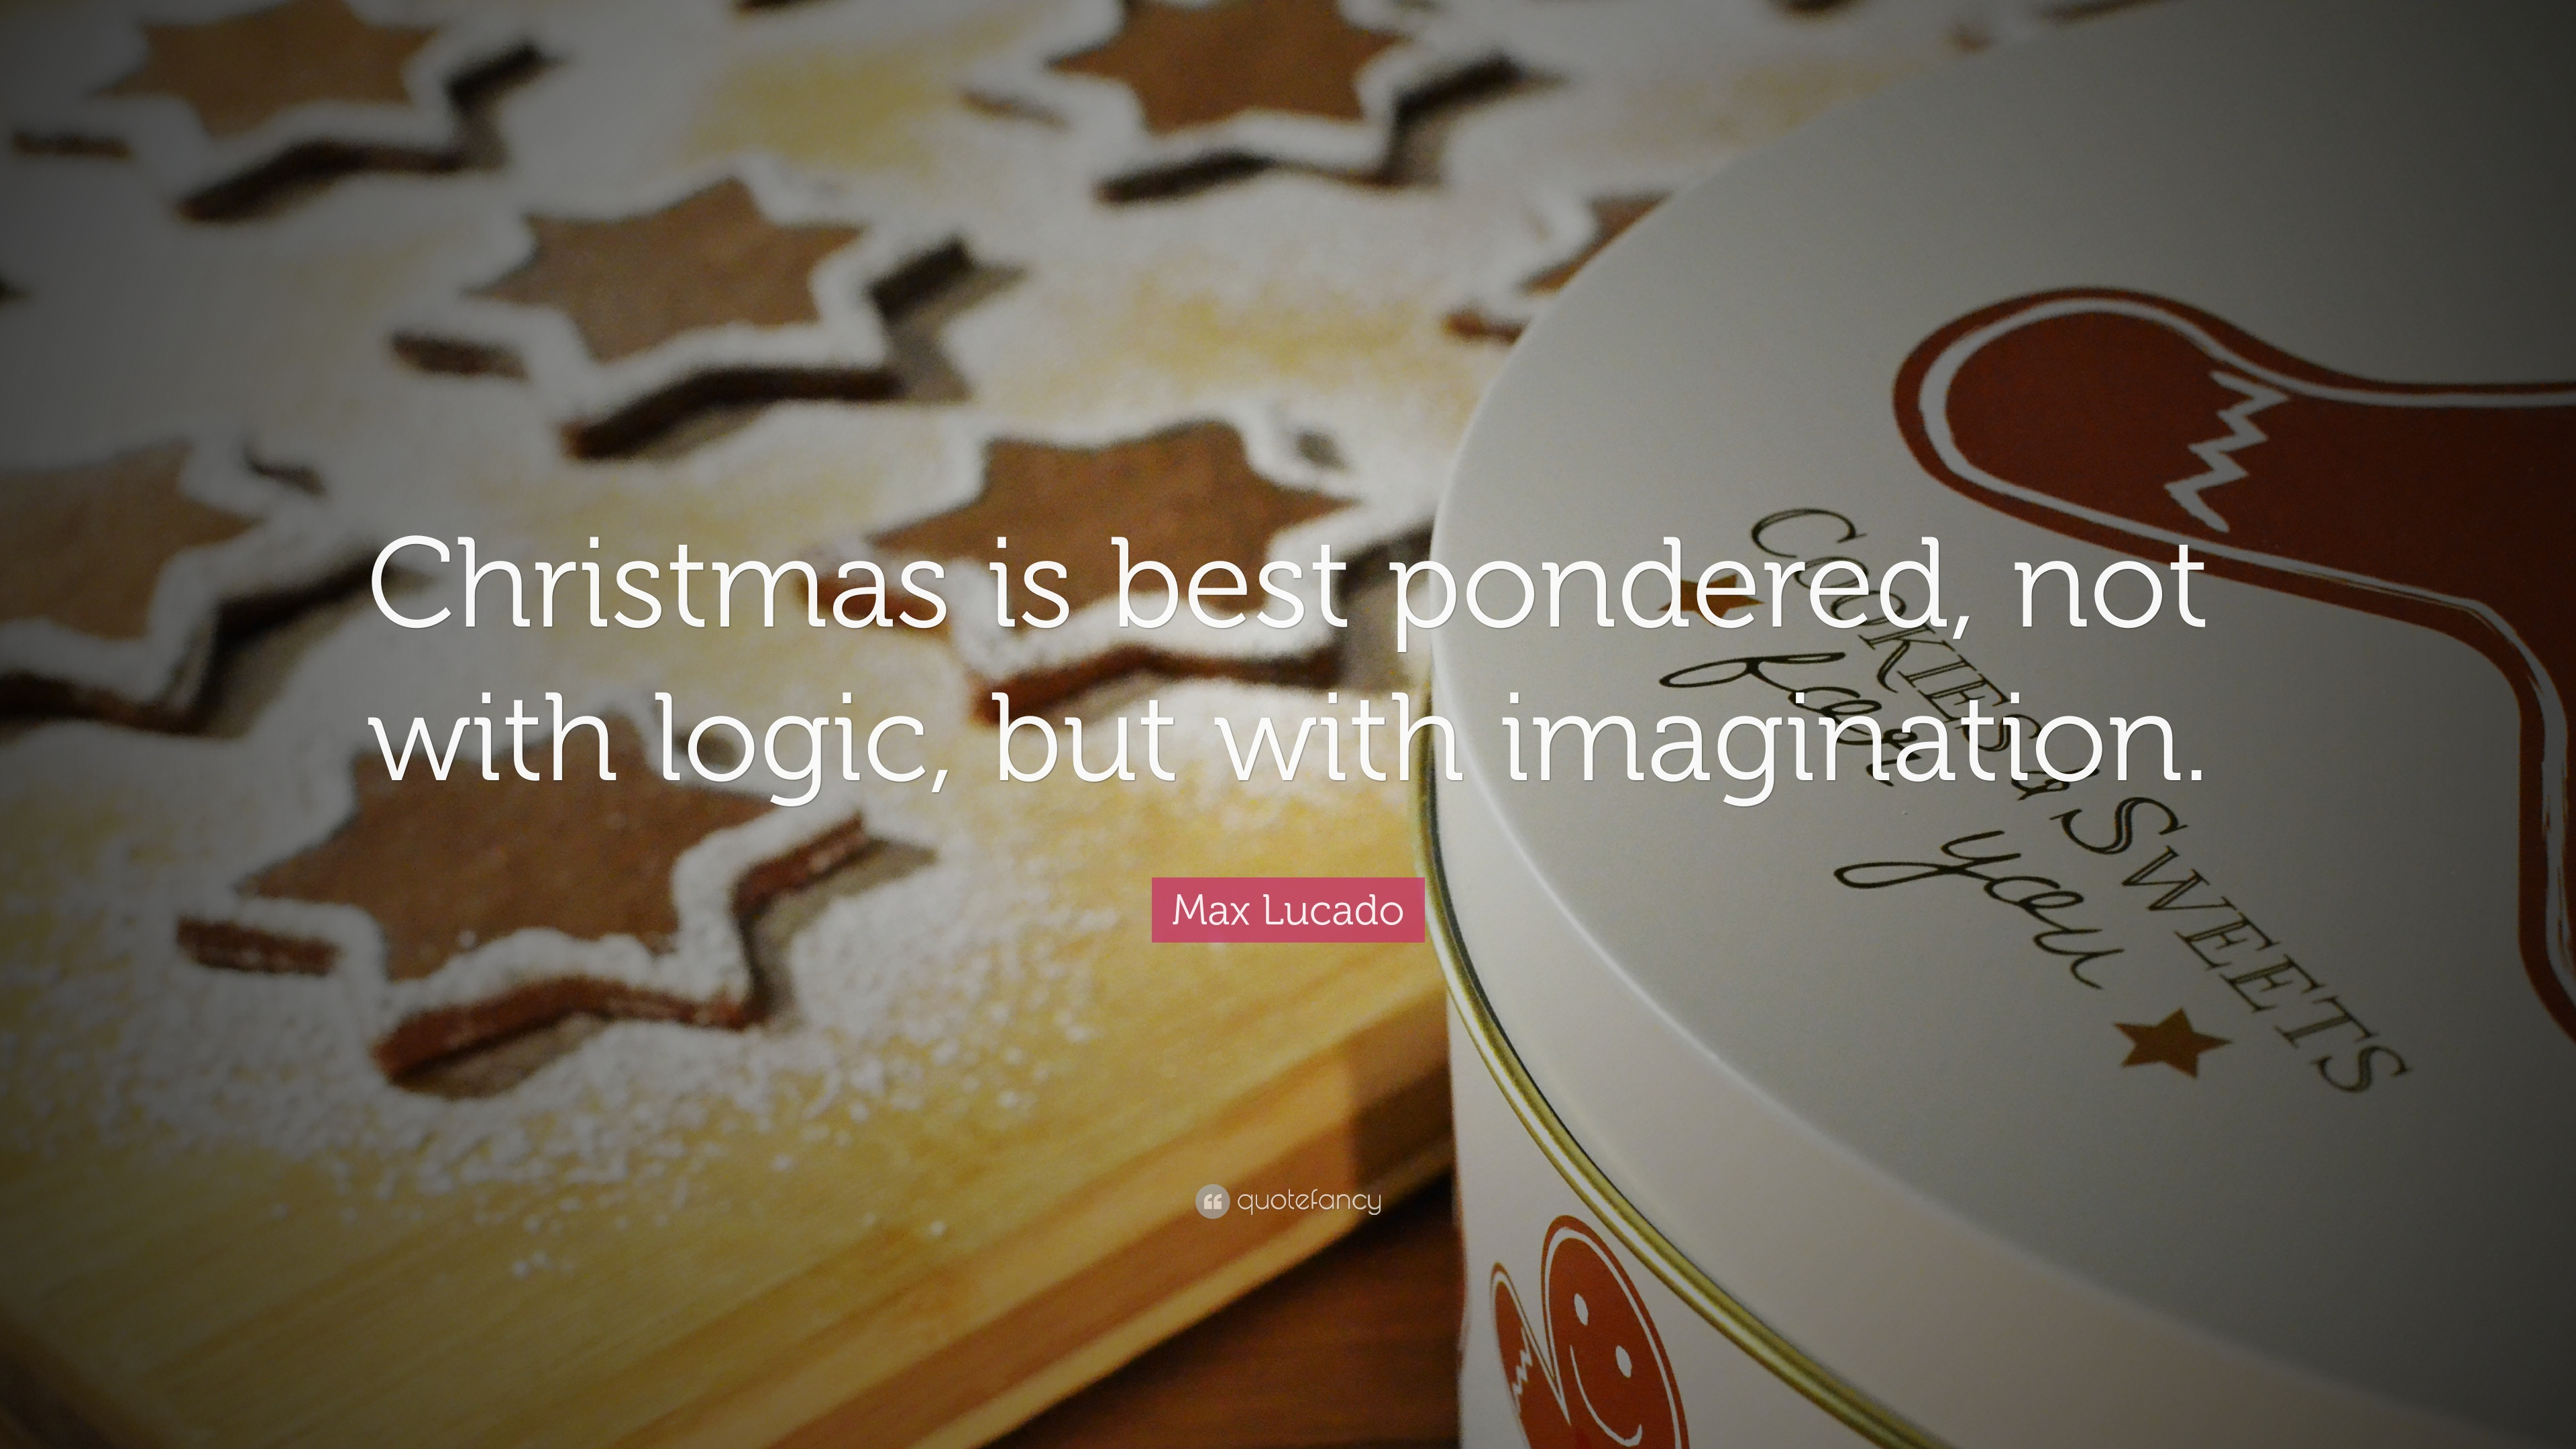 Max Lucado Quote: U201cChristmas Is Best Pondered, Not With Logic, But With